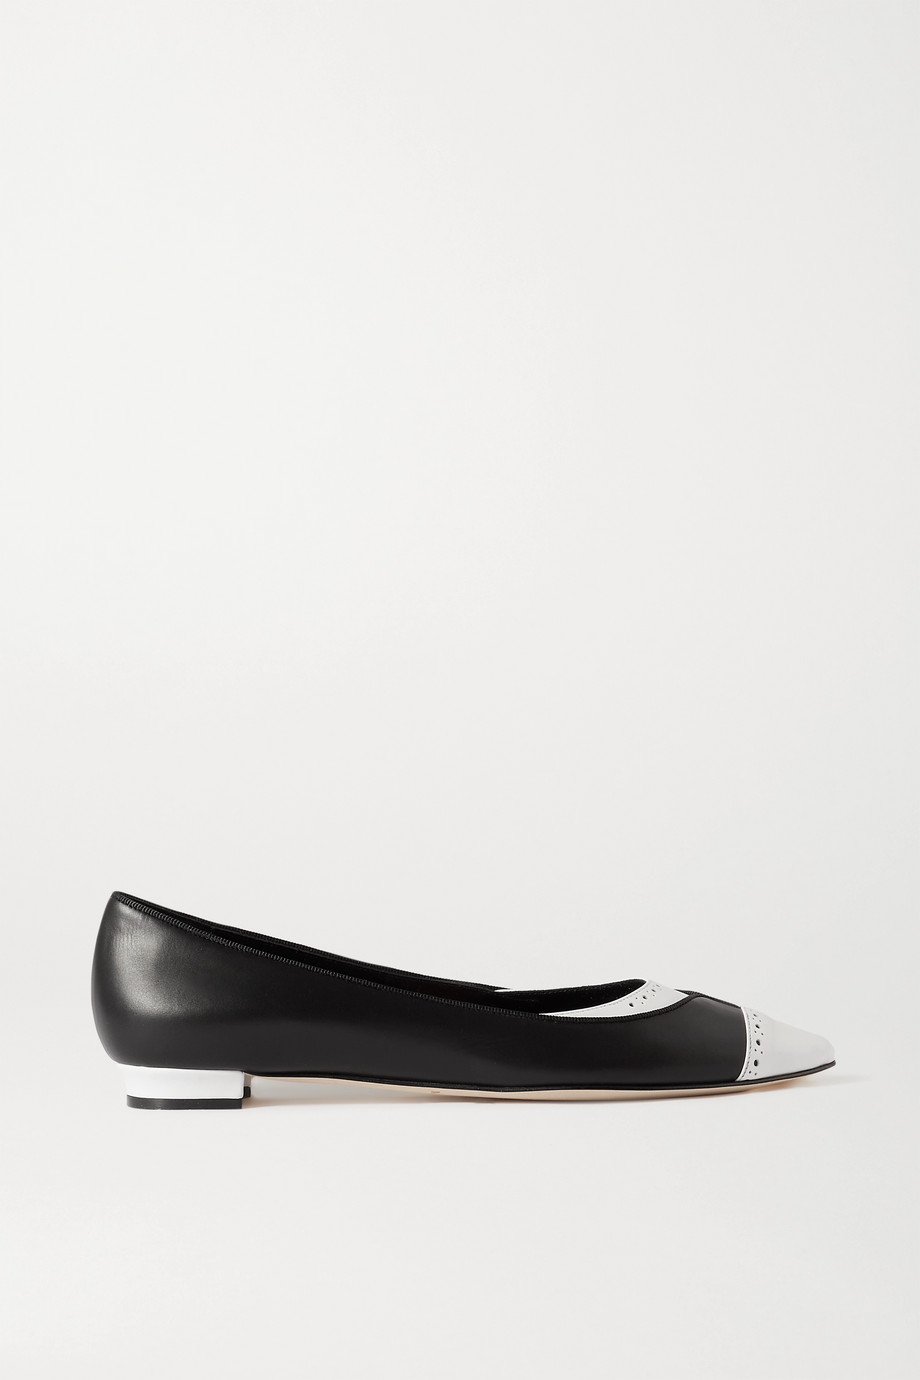 MANOLO BLAHNIK Anfiliga two-tone leather point-toe flats